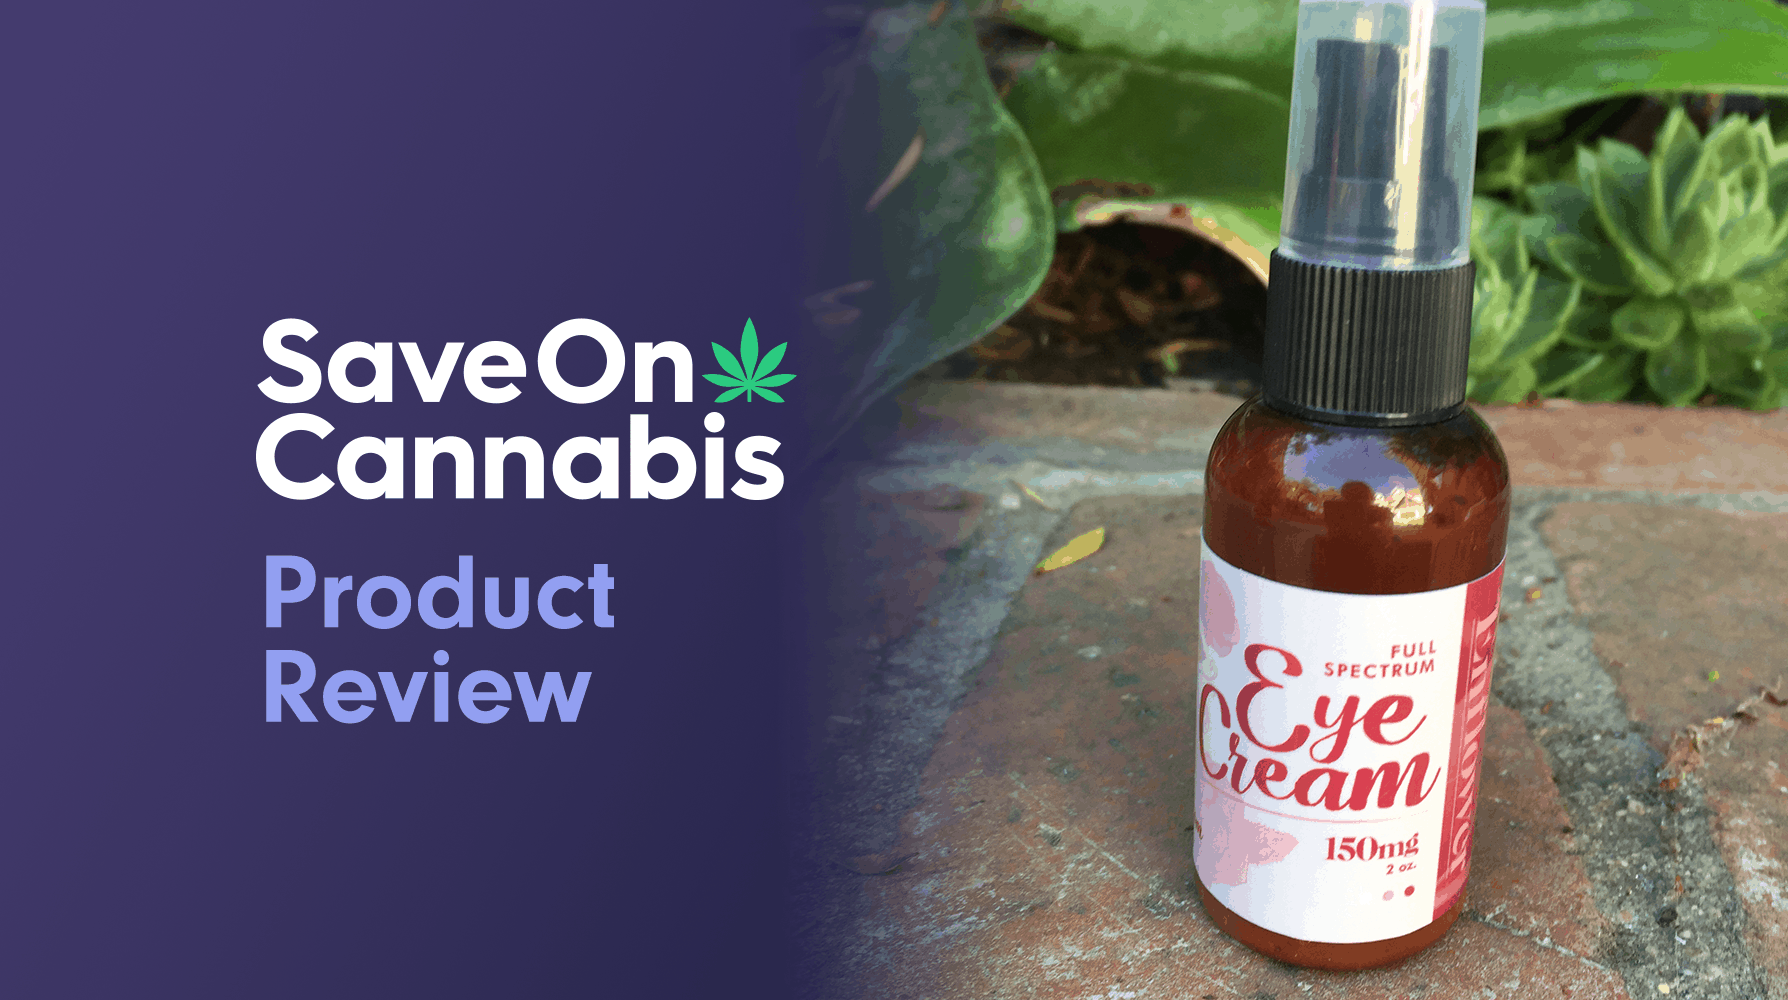 Enflower CBD eye cream Extract CBD review save on cannabis website